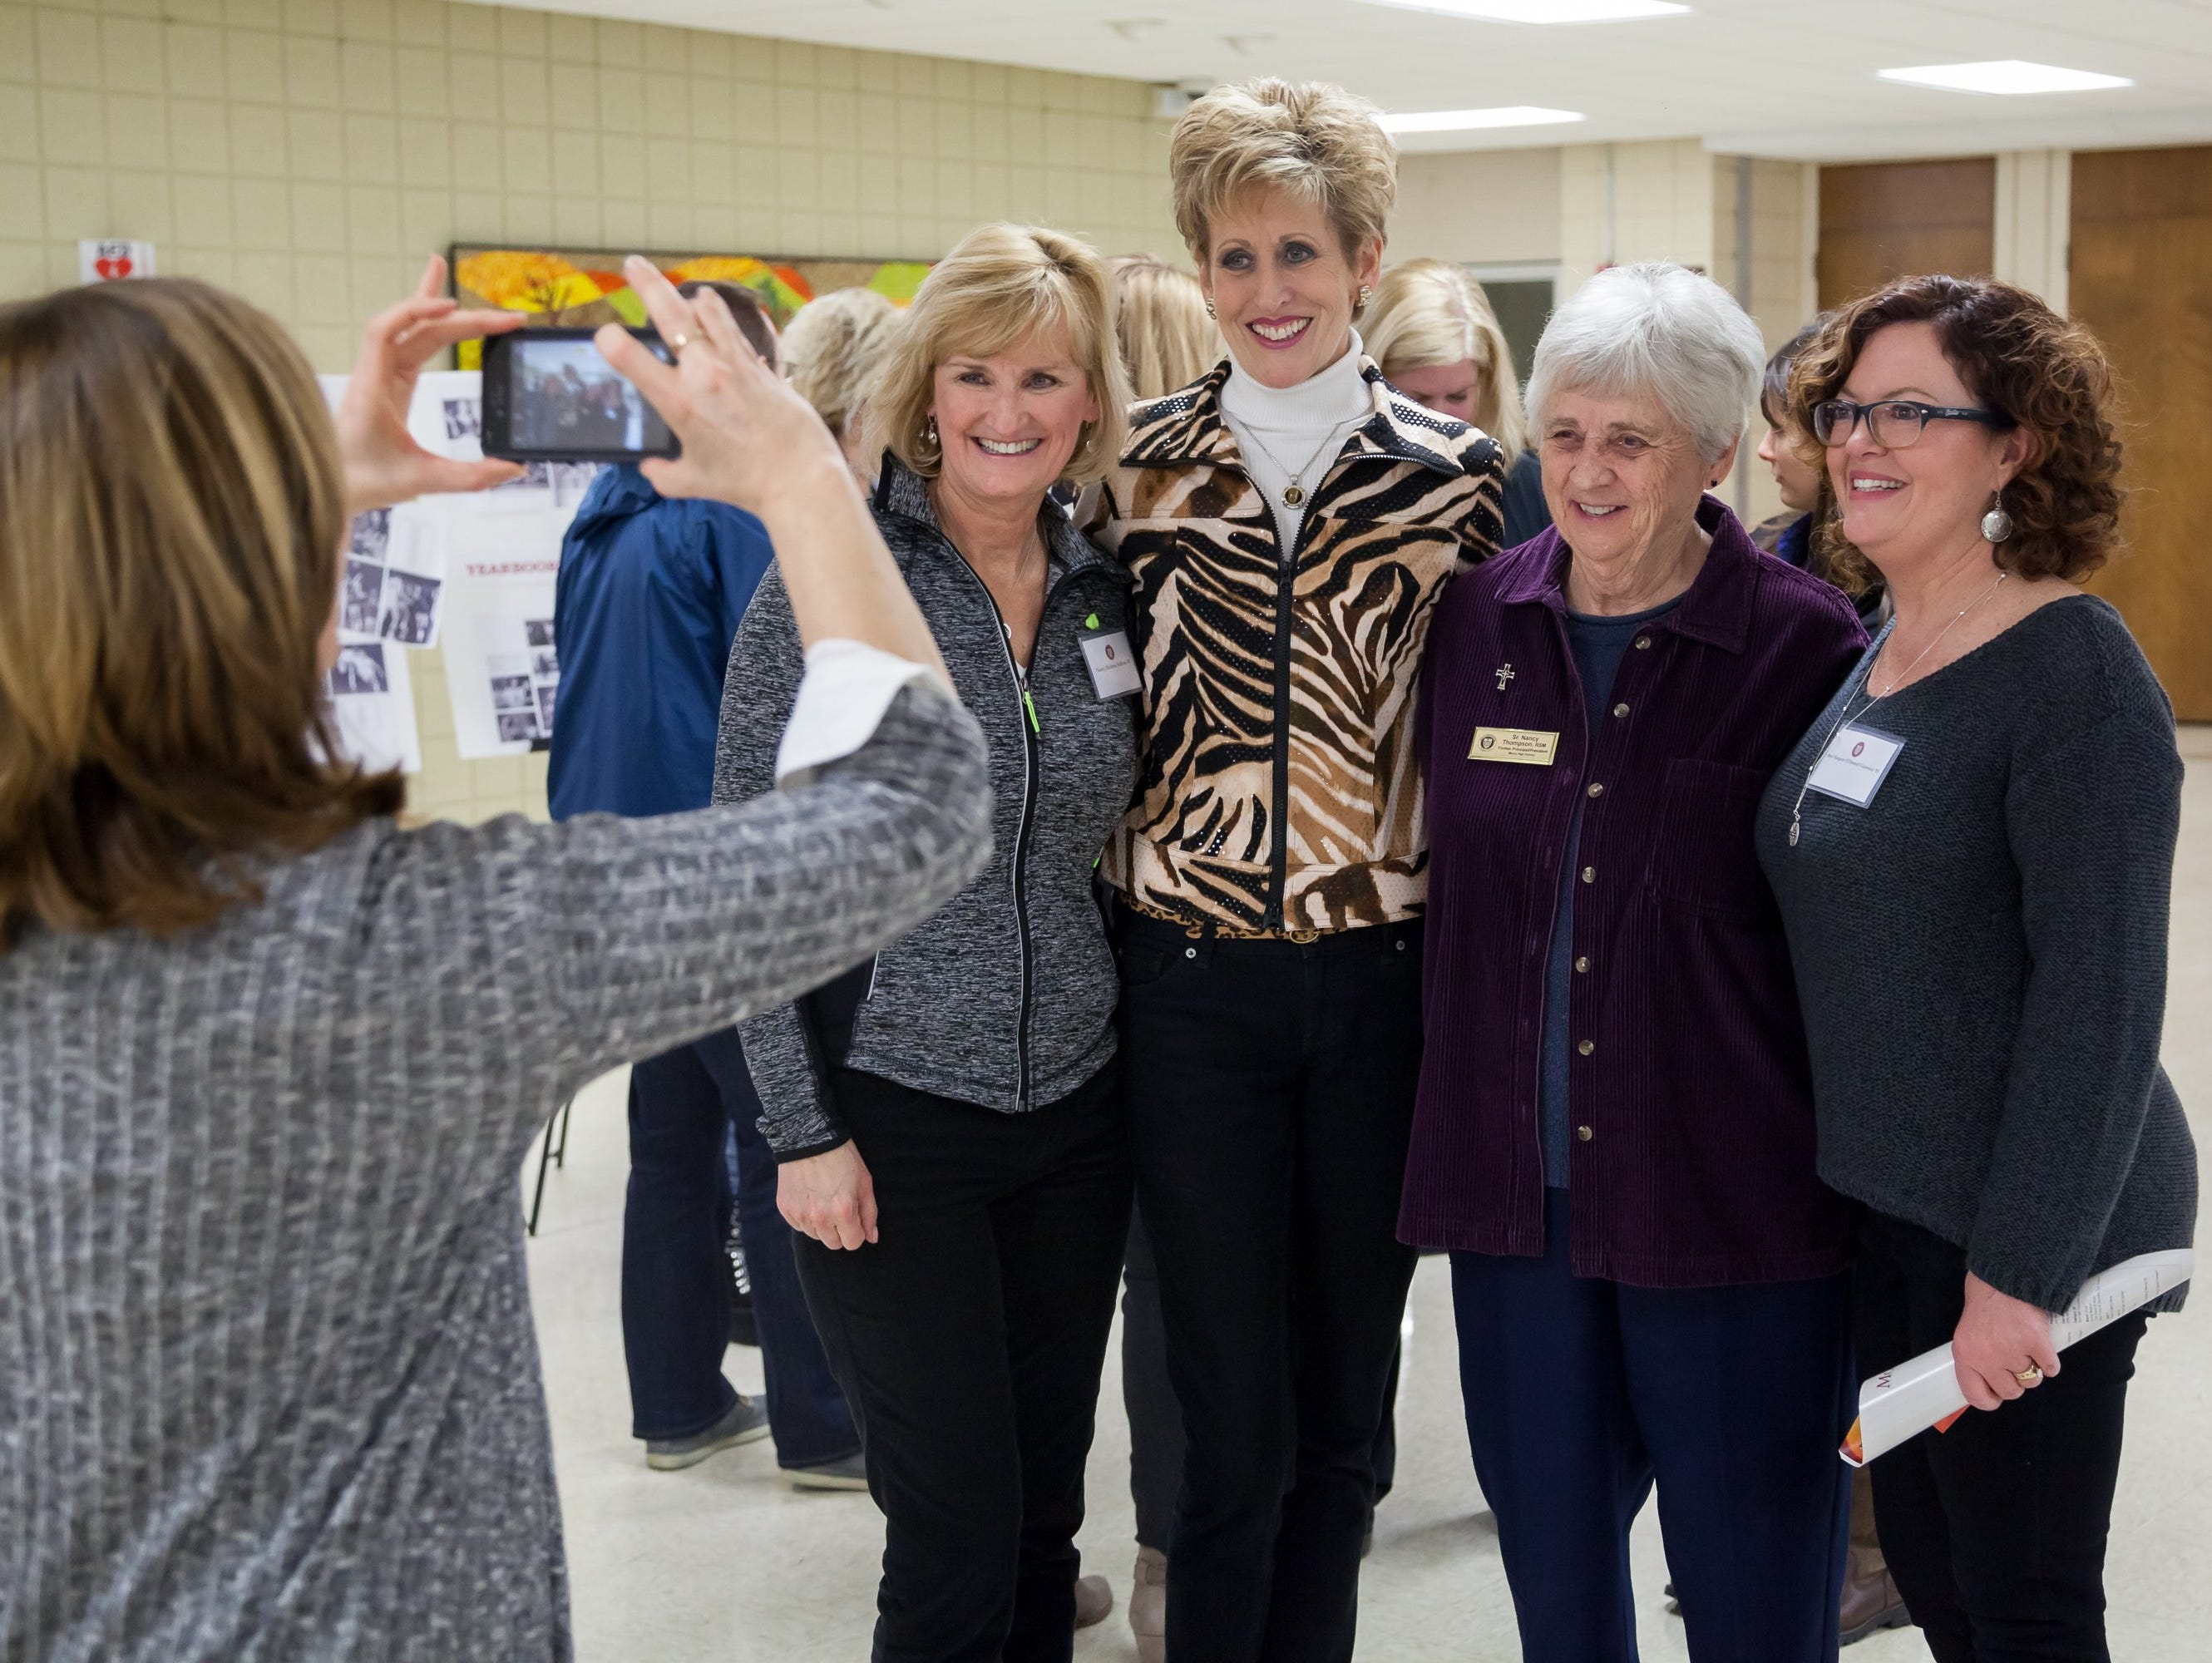 Friends, family and faculty joined in the celebration of Mercy High School's 1977 and 1982 state championship basketball teams at Farmington Hills Mercy on Friday, Jan. 8, 2016.